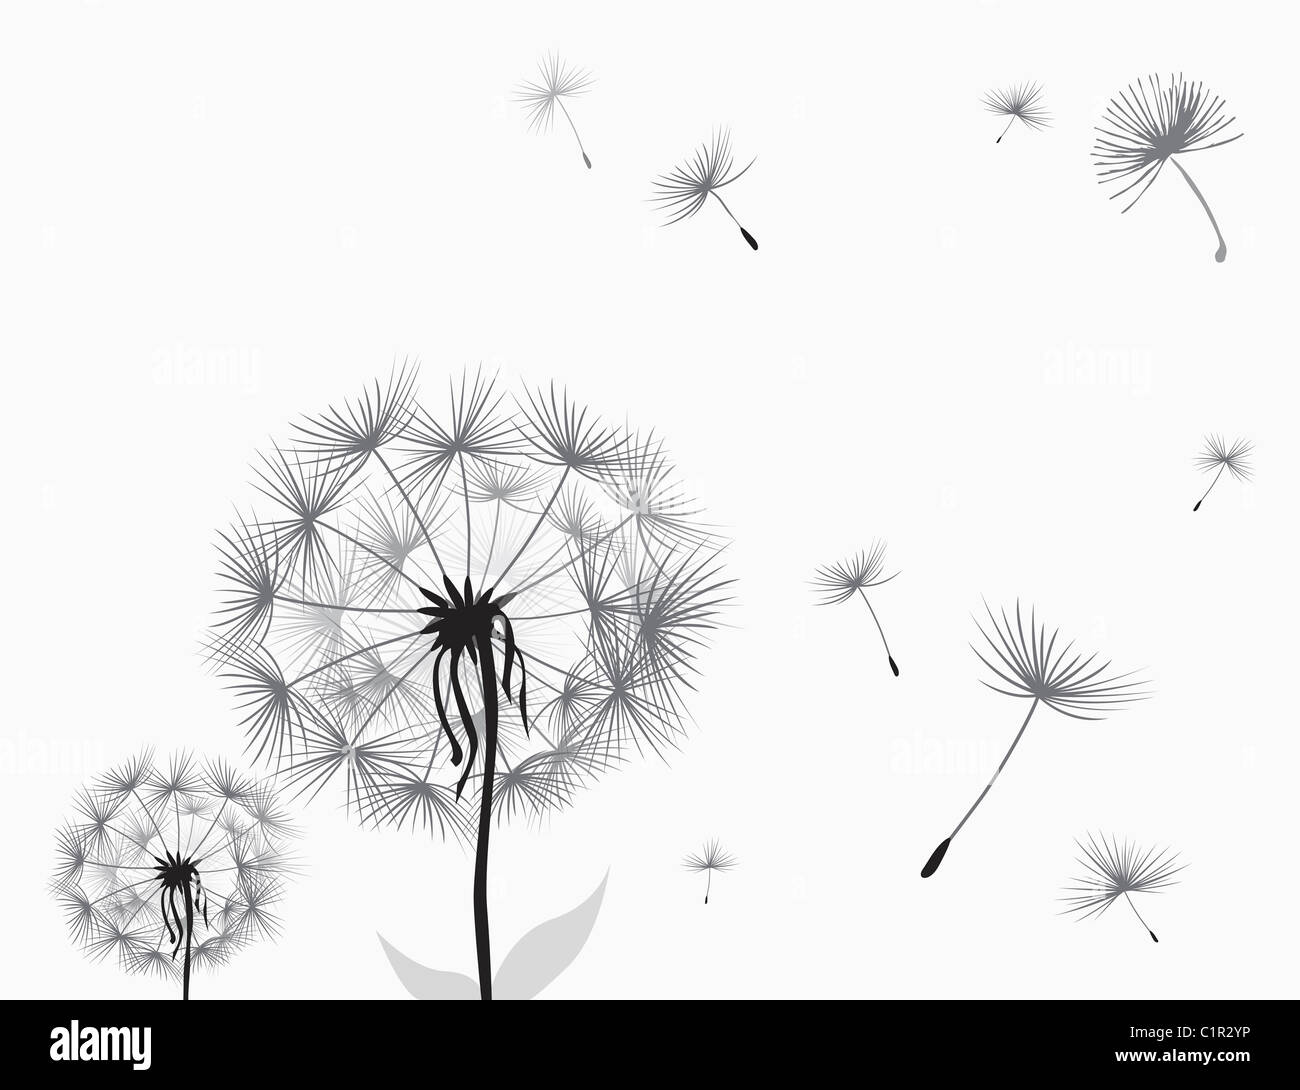 dandelion illustration stock photo 35542634 alamy